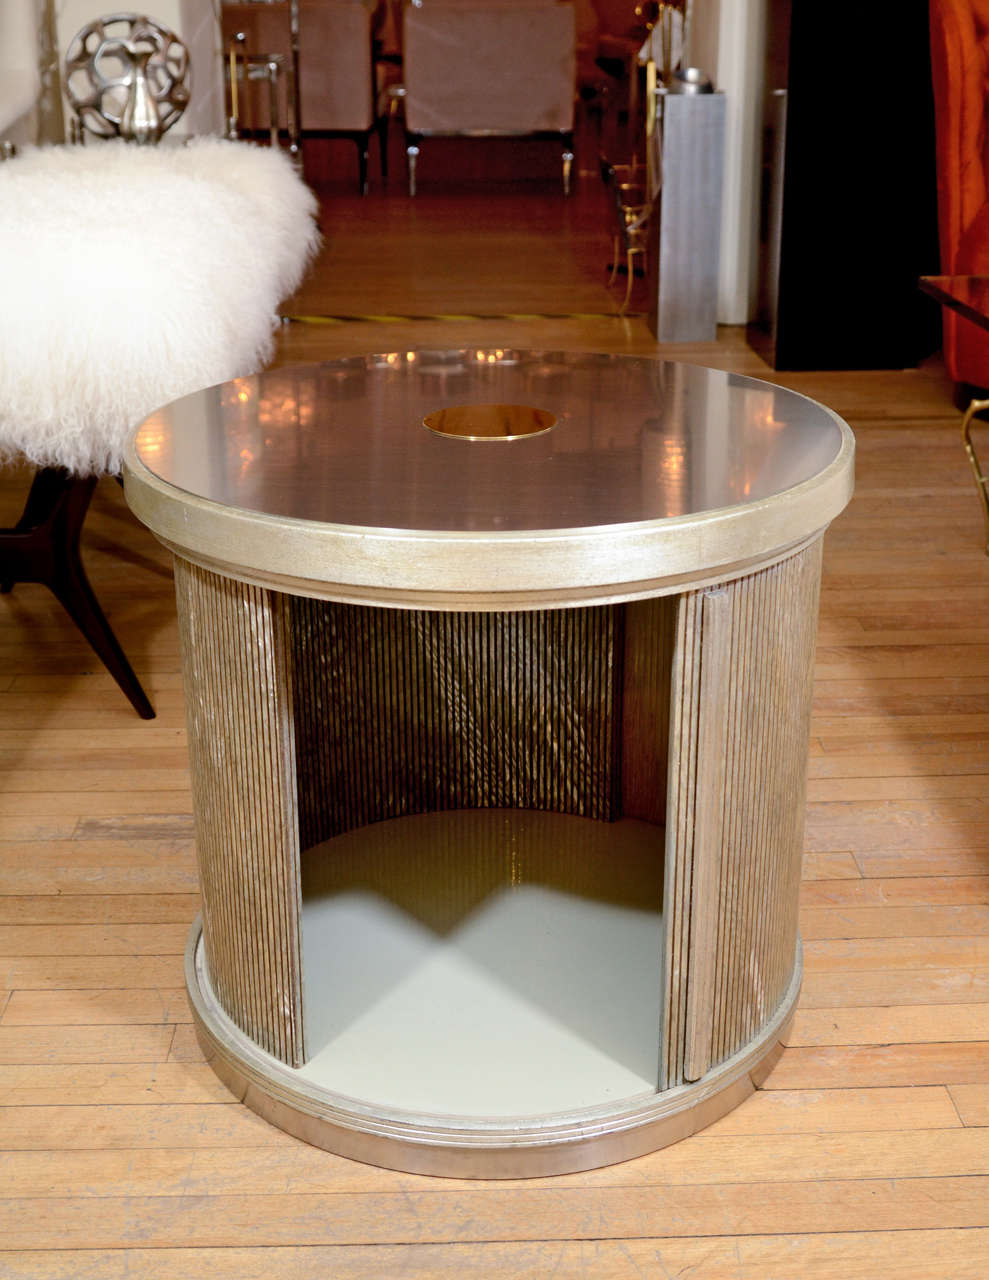 Pair Of Drum Form Side Tables With Sliding Door And Faux Finish Details image 6